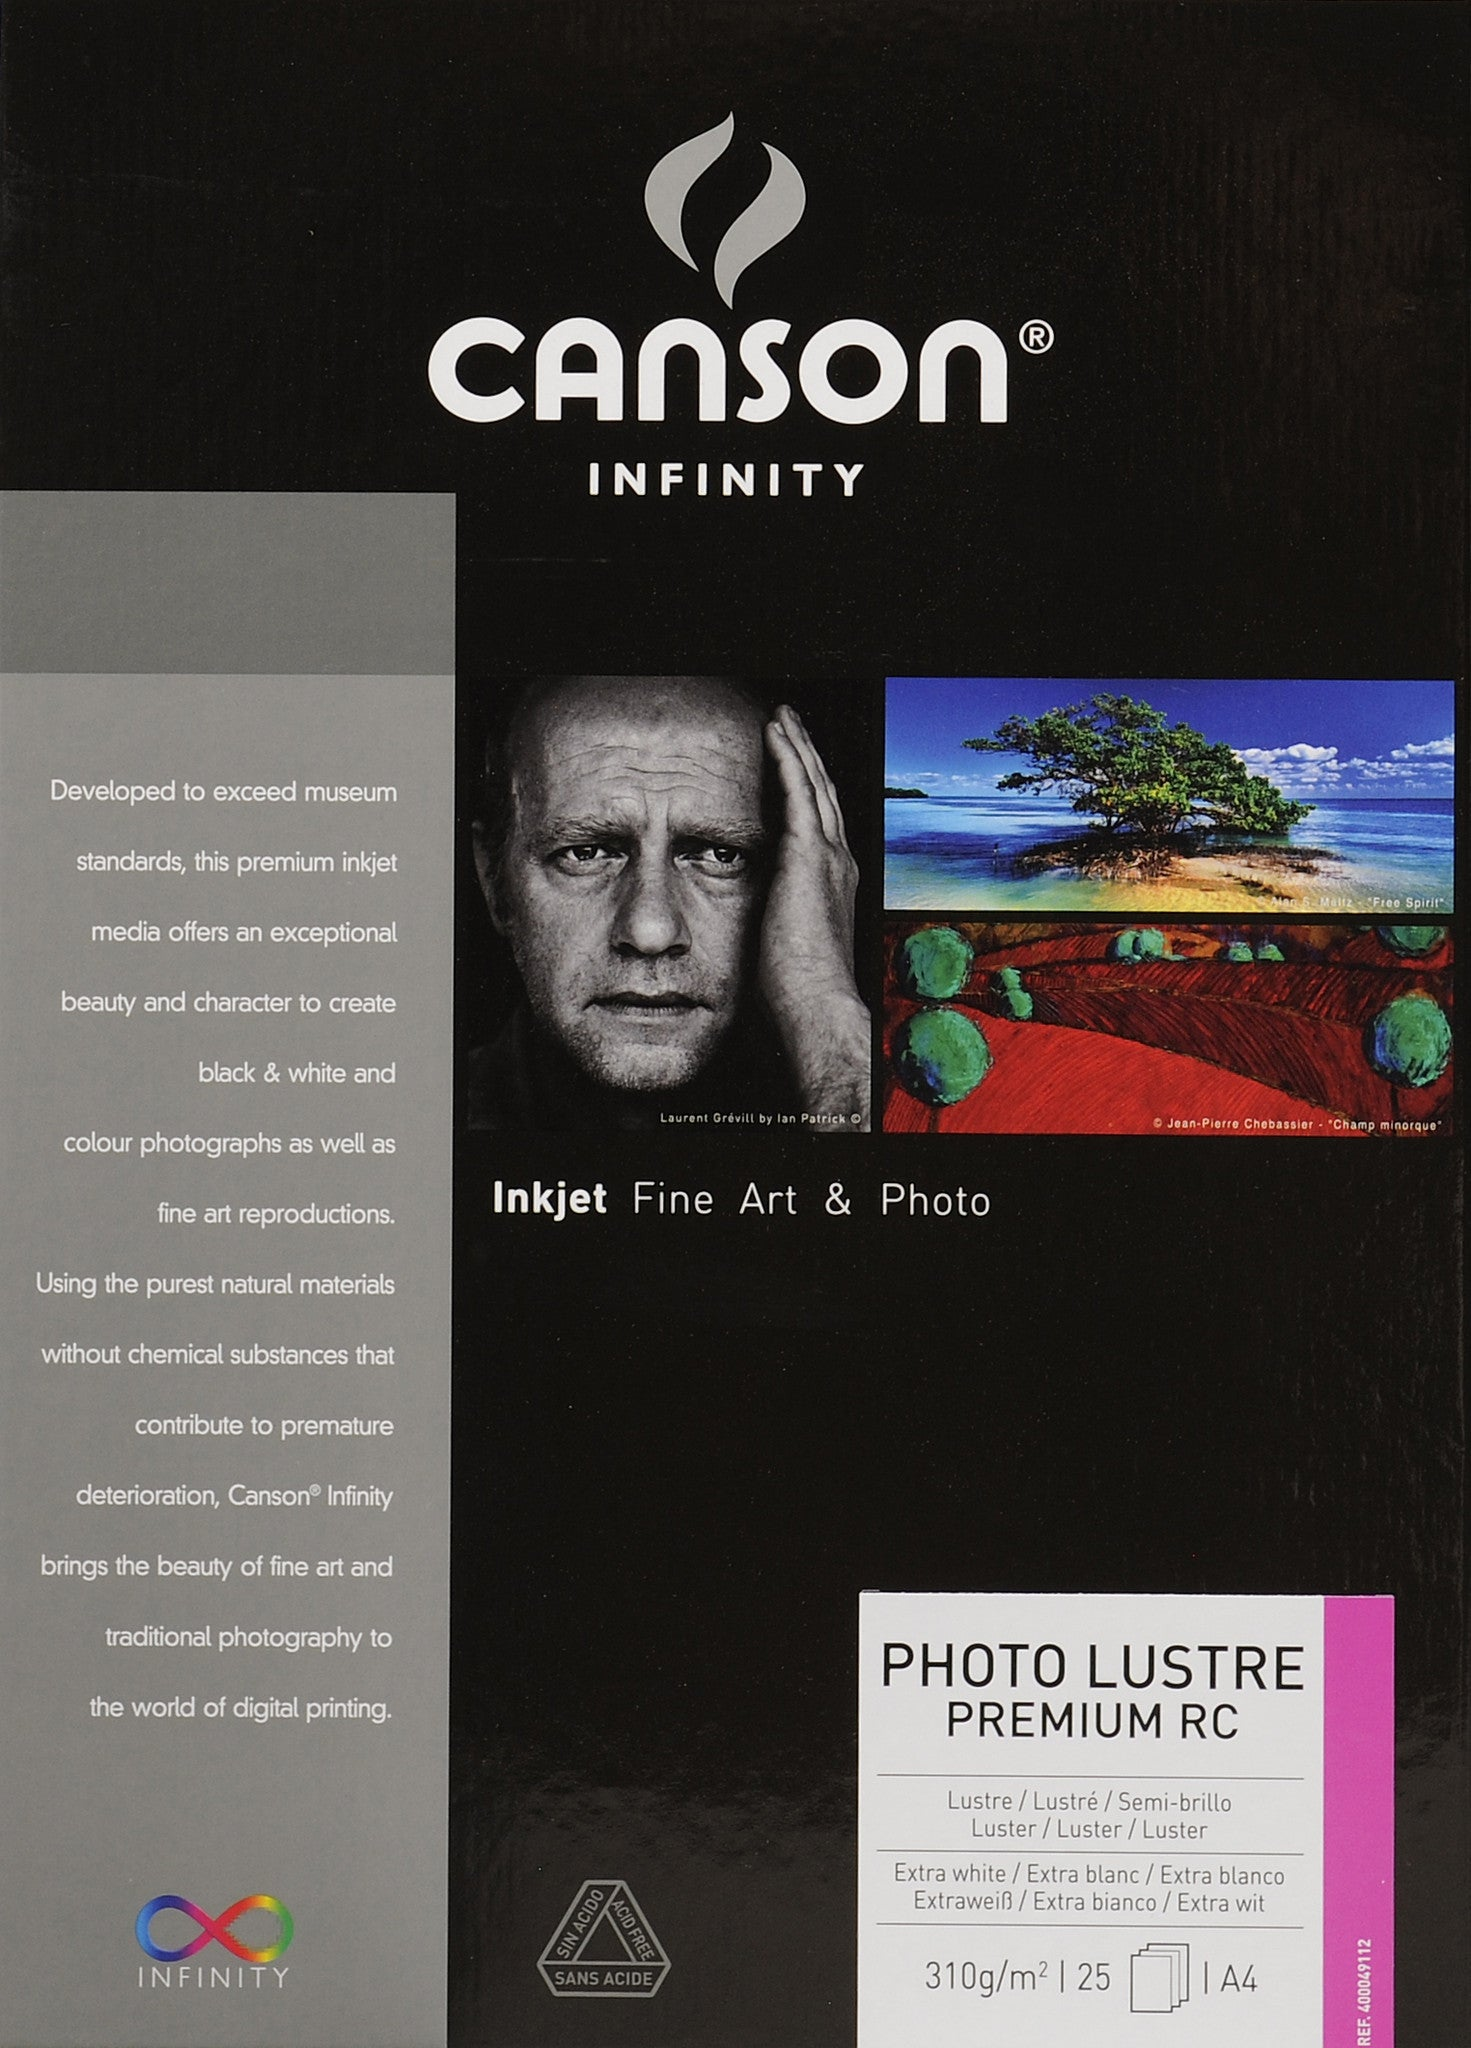 Canson Infinity Photo Luster Premium RC - 310gsm - A4 (25 sheets)